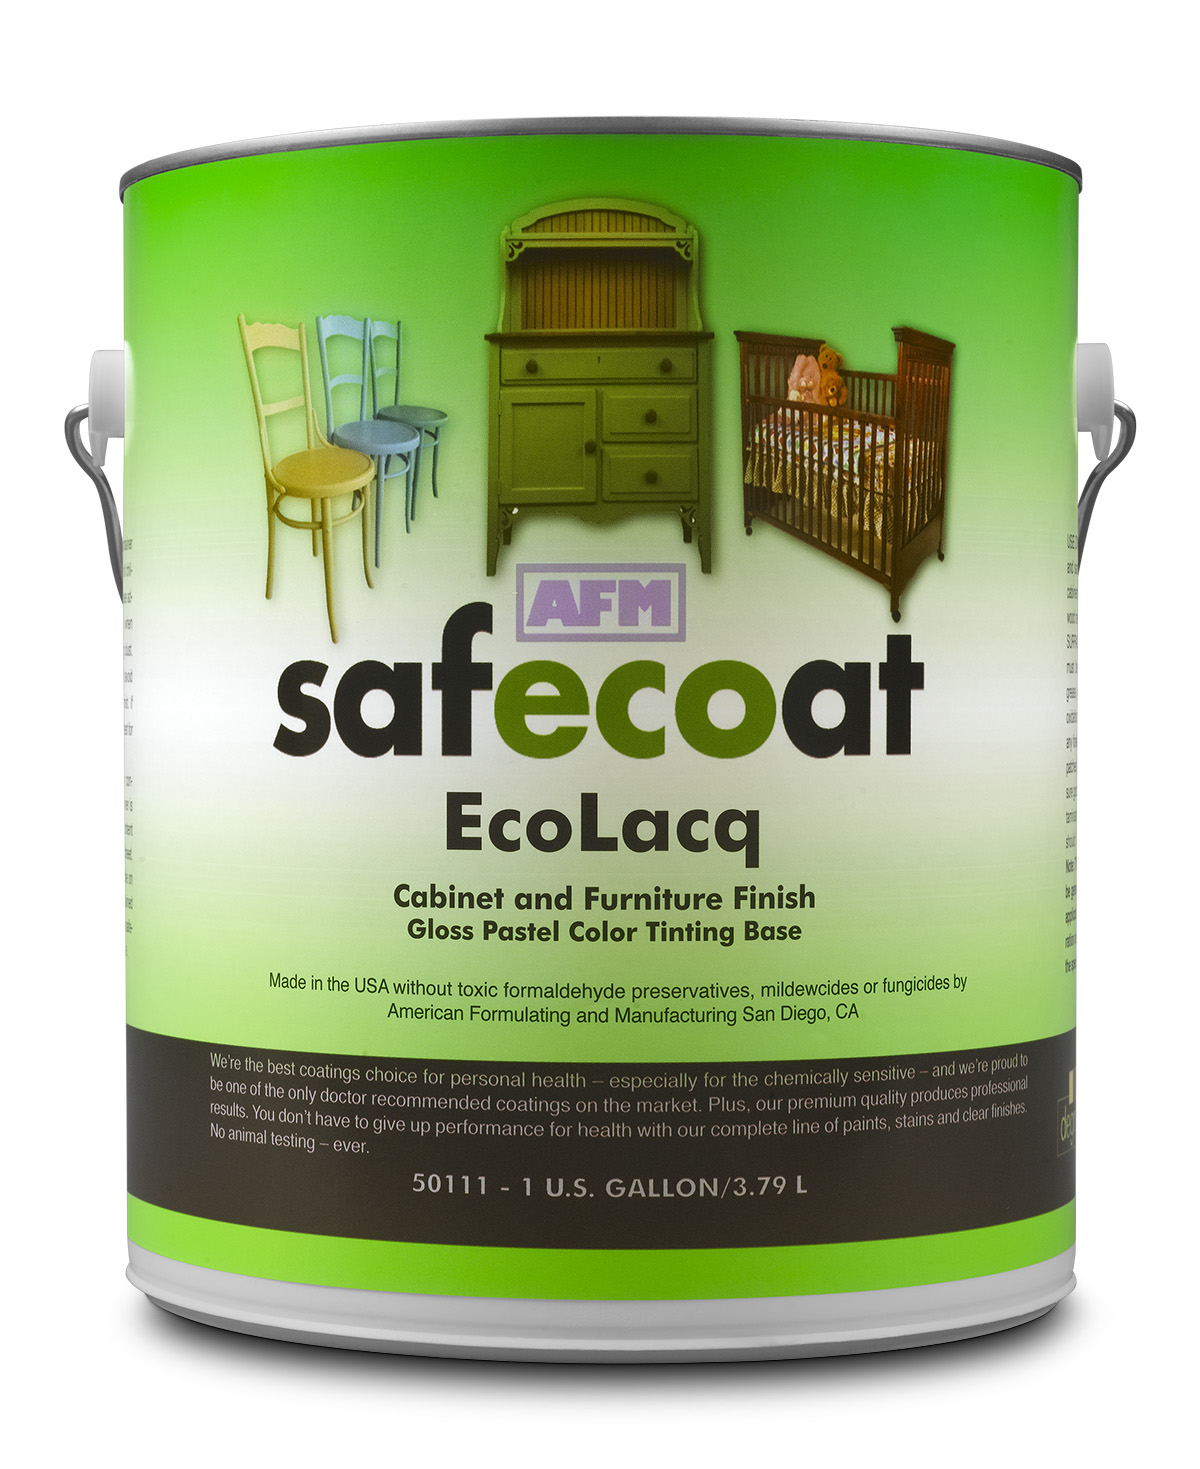 Ecolacq tintable cabinet and furniture polish